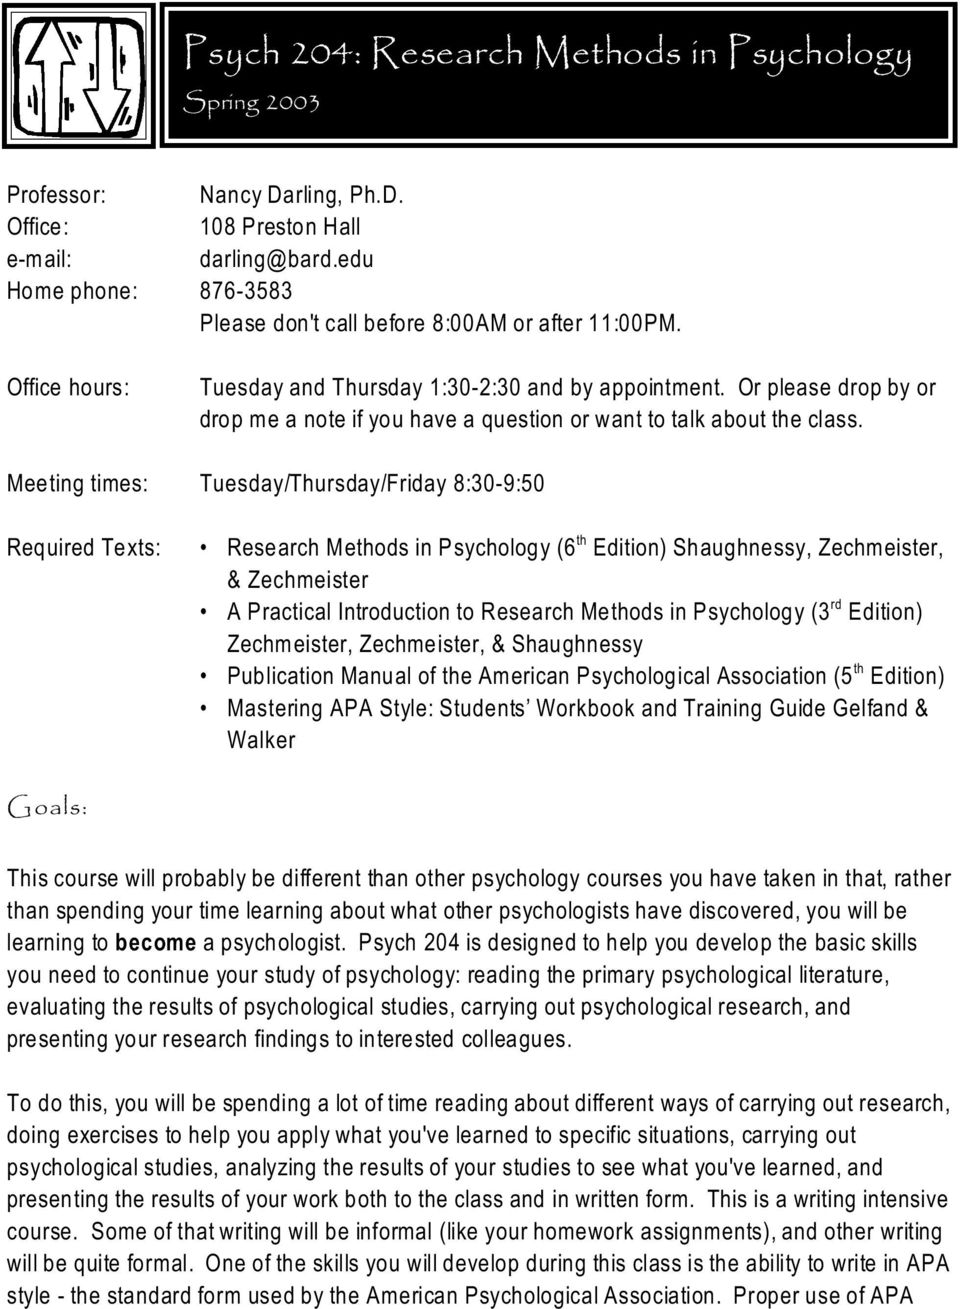 Research Methods In Psychology Shaughnessy Pdf